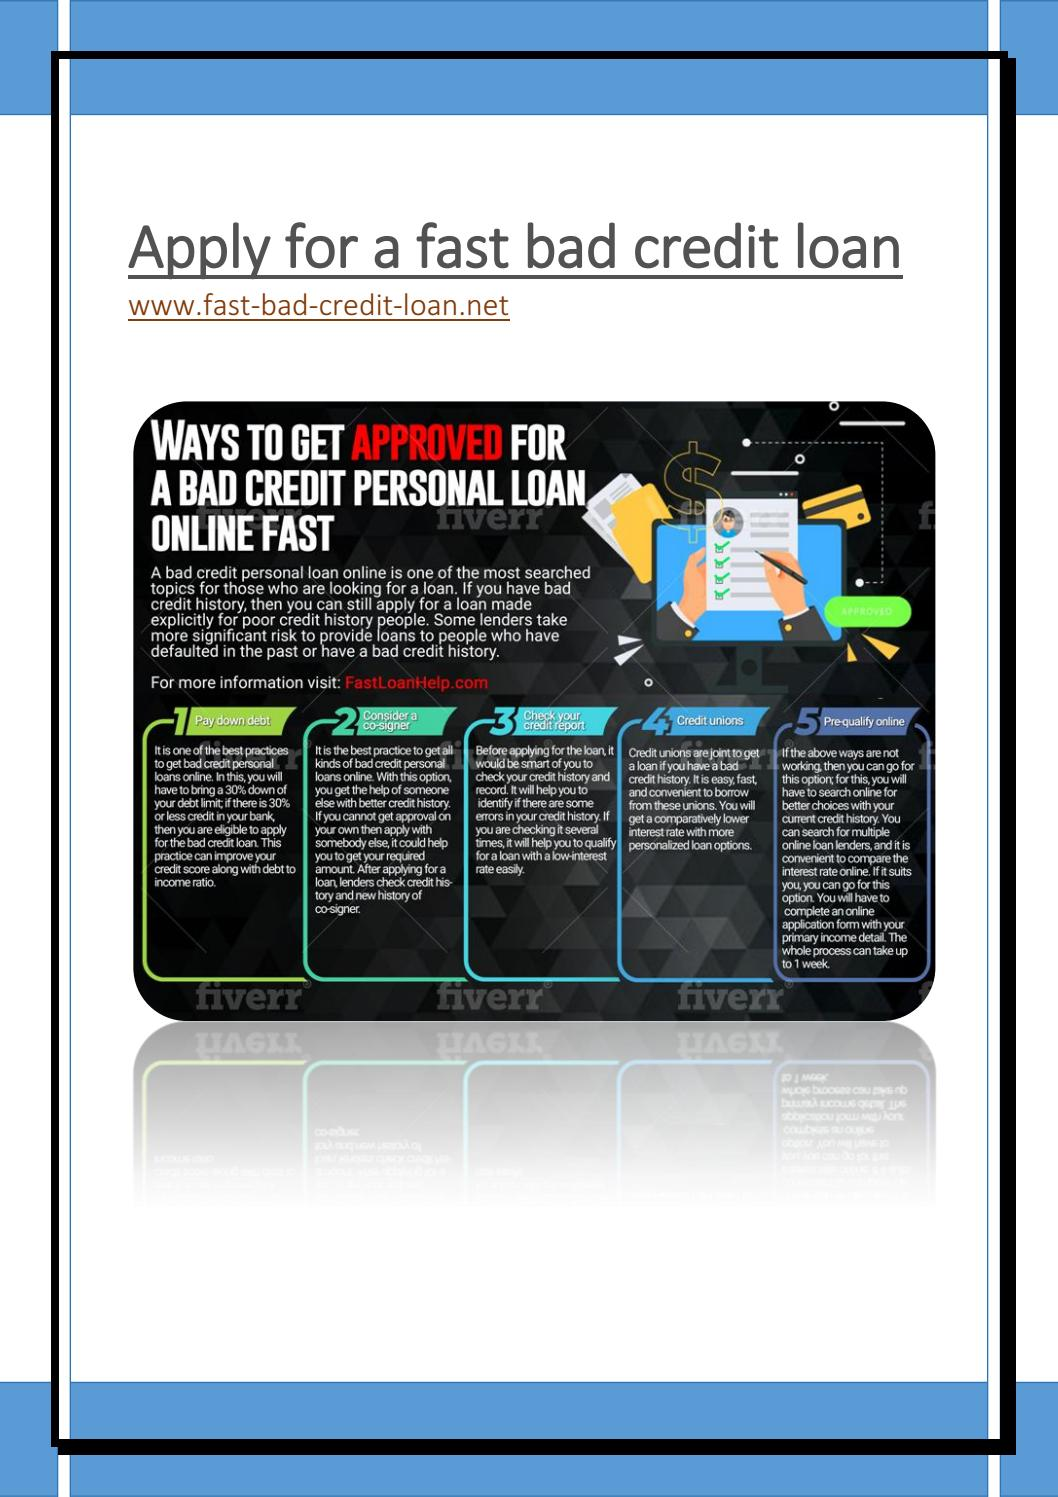 Fast Bad Credit Personal Loans For People With Bad Credit by VaN